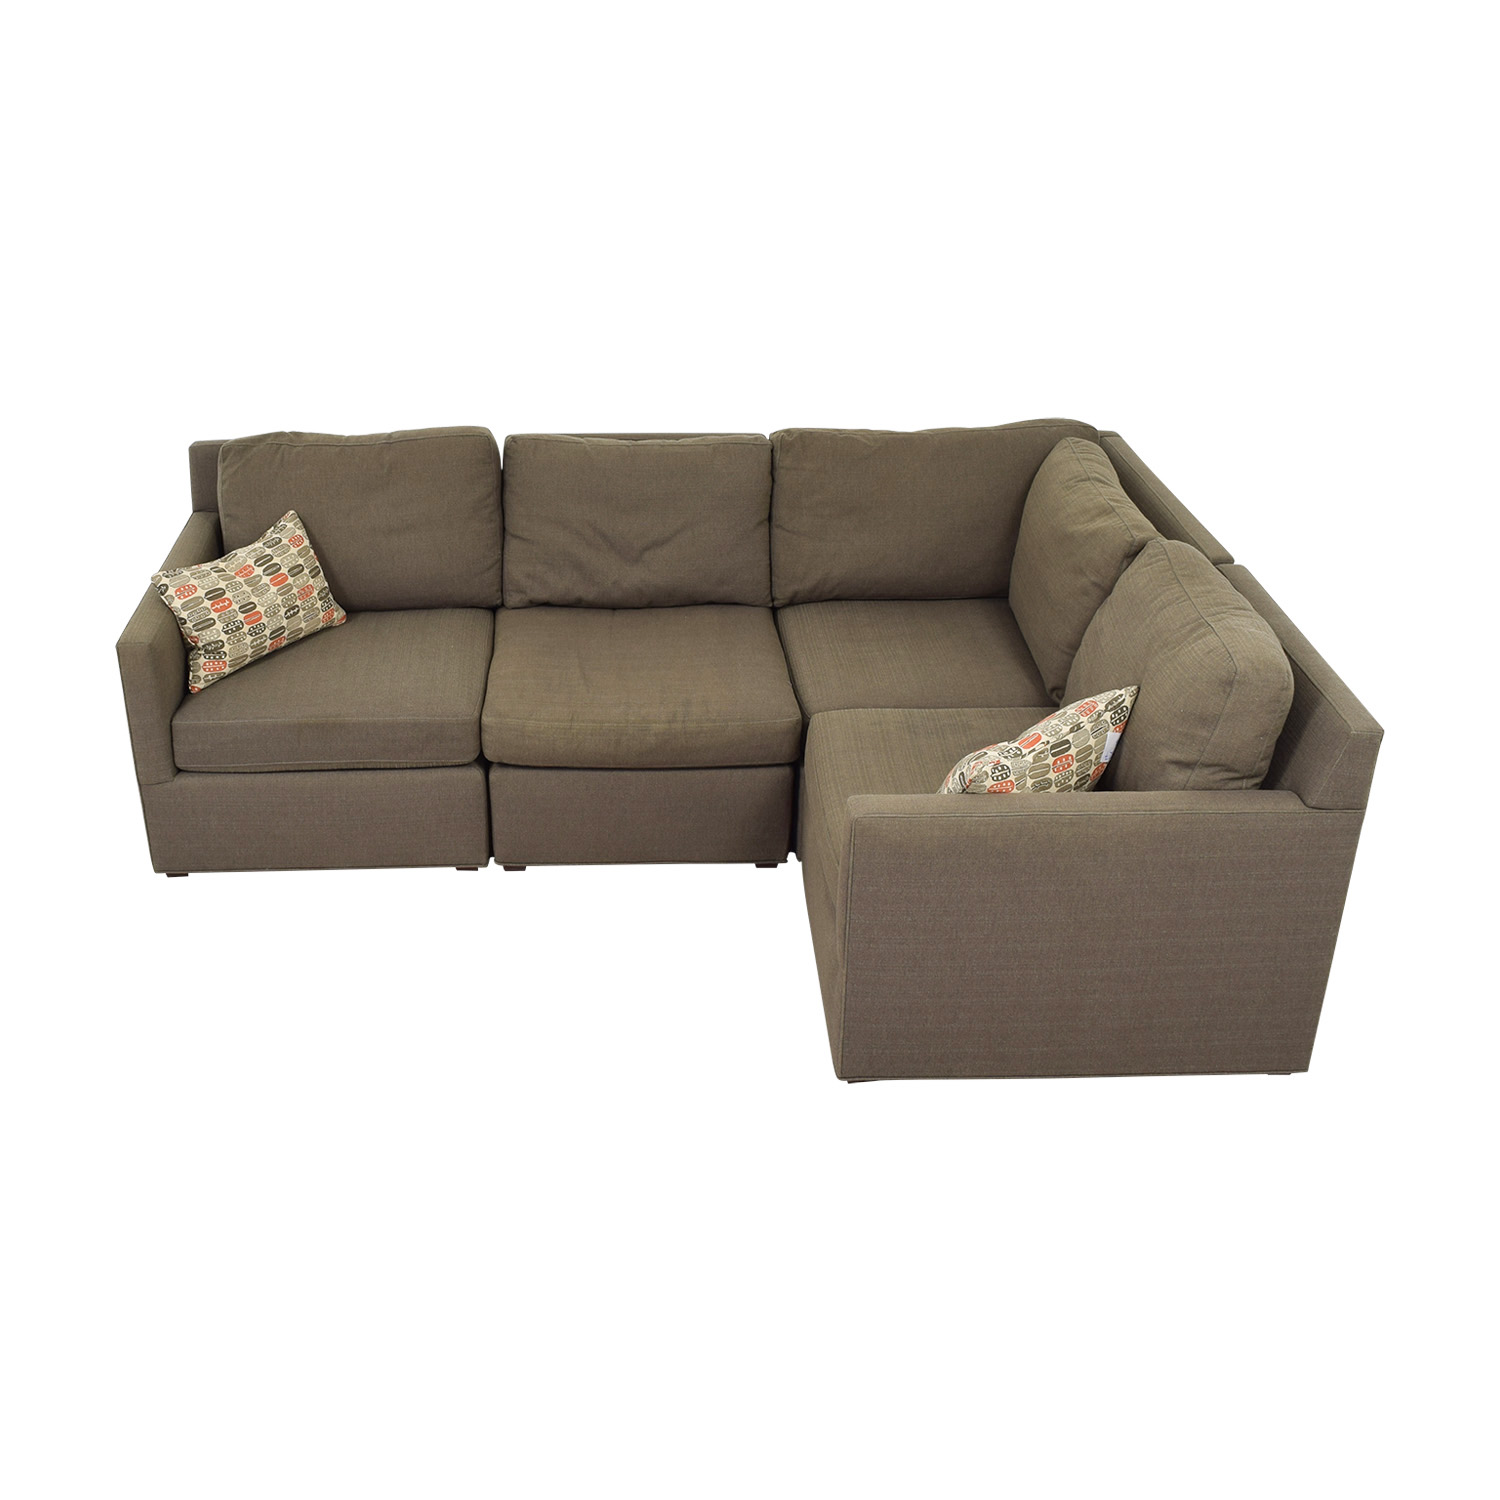 Crate & Barrel Grey L-Shaped Sectional Crate & Barrel